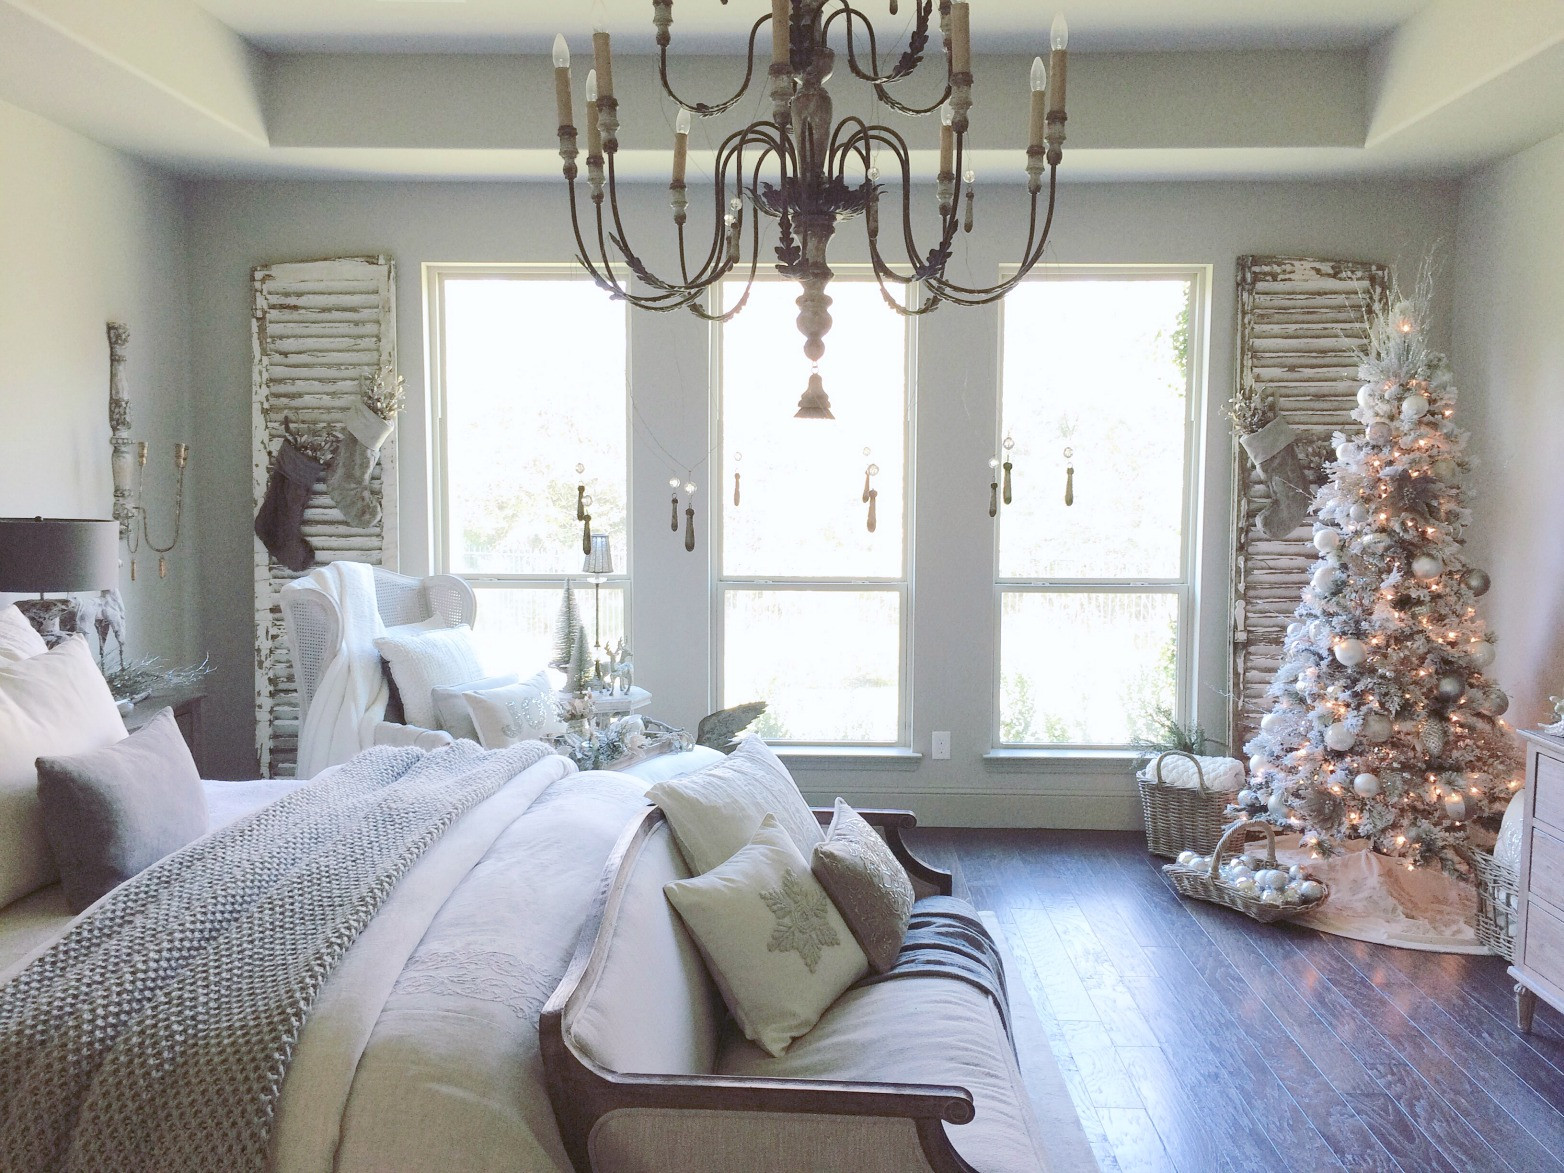 Christmas Bedroom Decor  Decor Gold Room Tour Just a Girl Blog